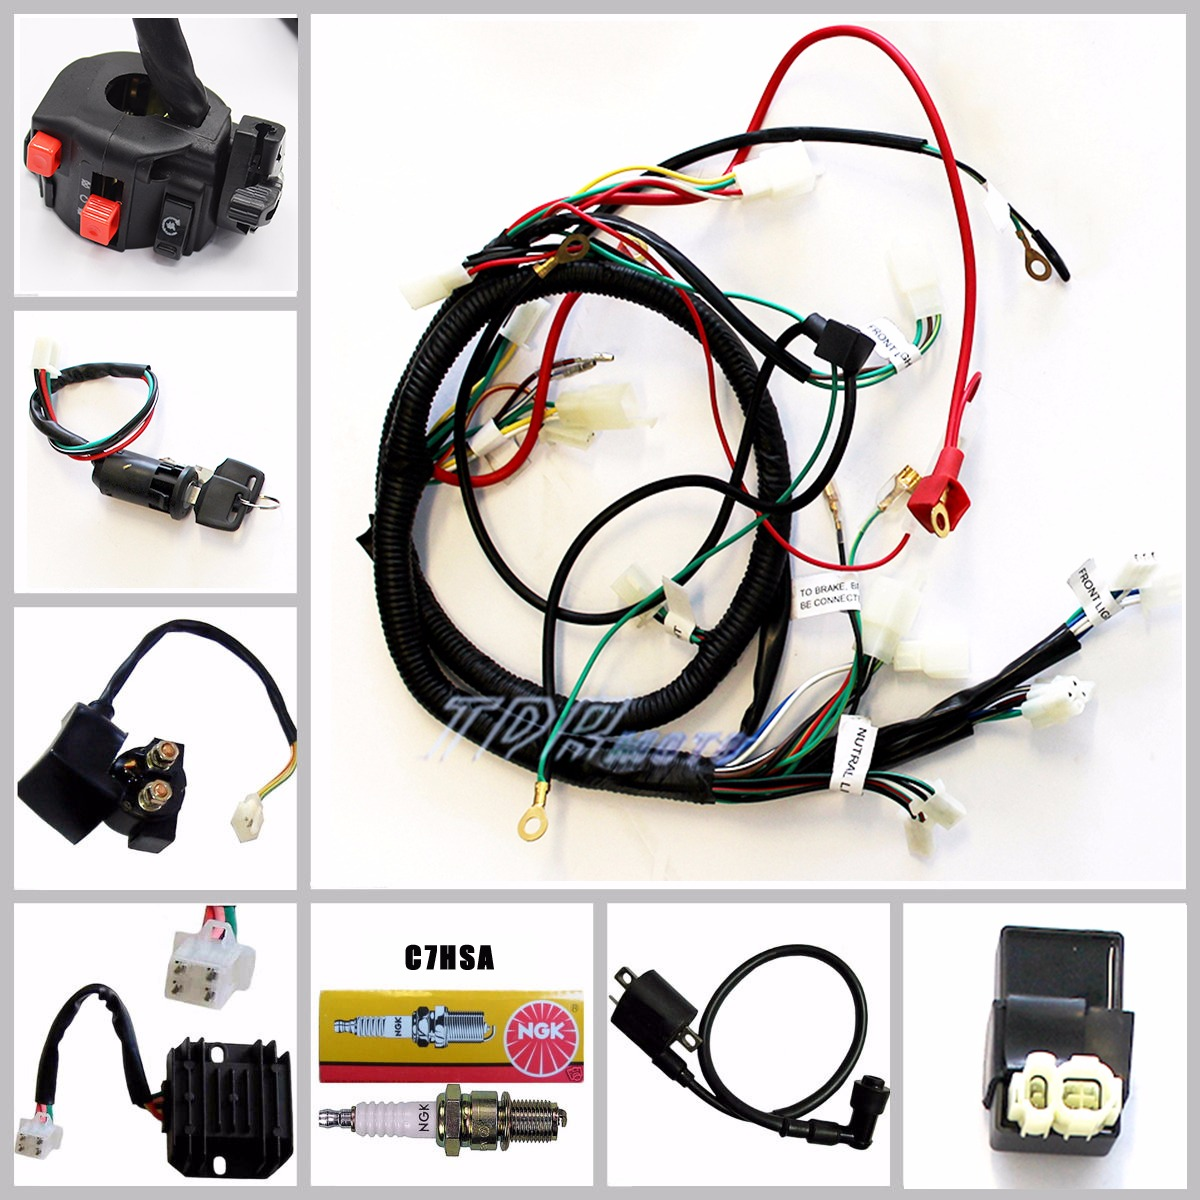 gy6 starter relay wiring prs diagram push pull 150cc carby electrics harness quad atv buggy